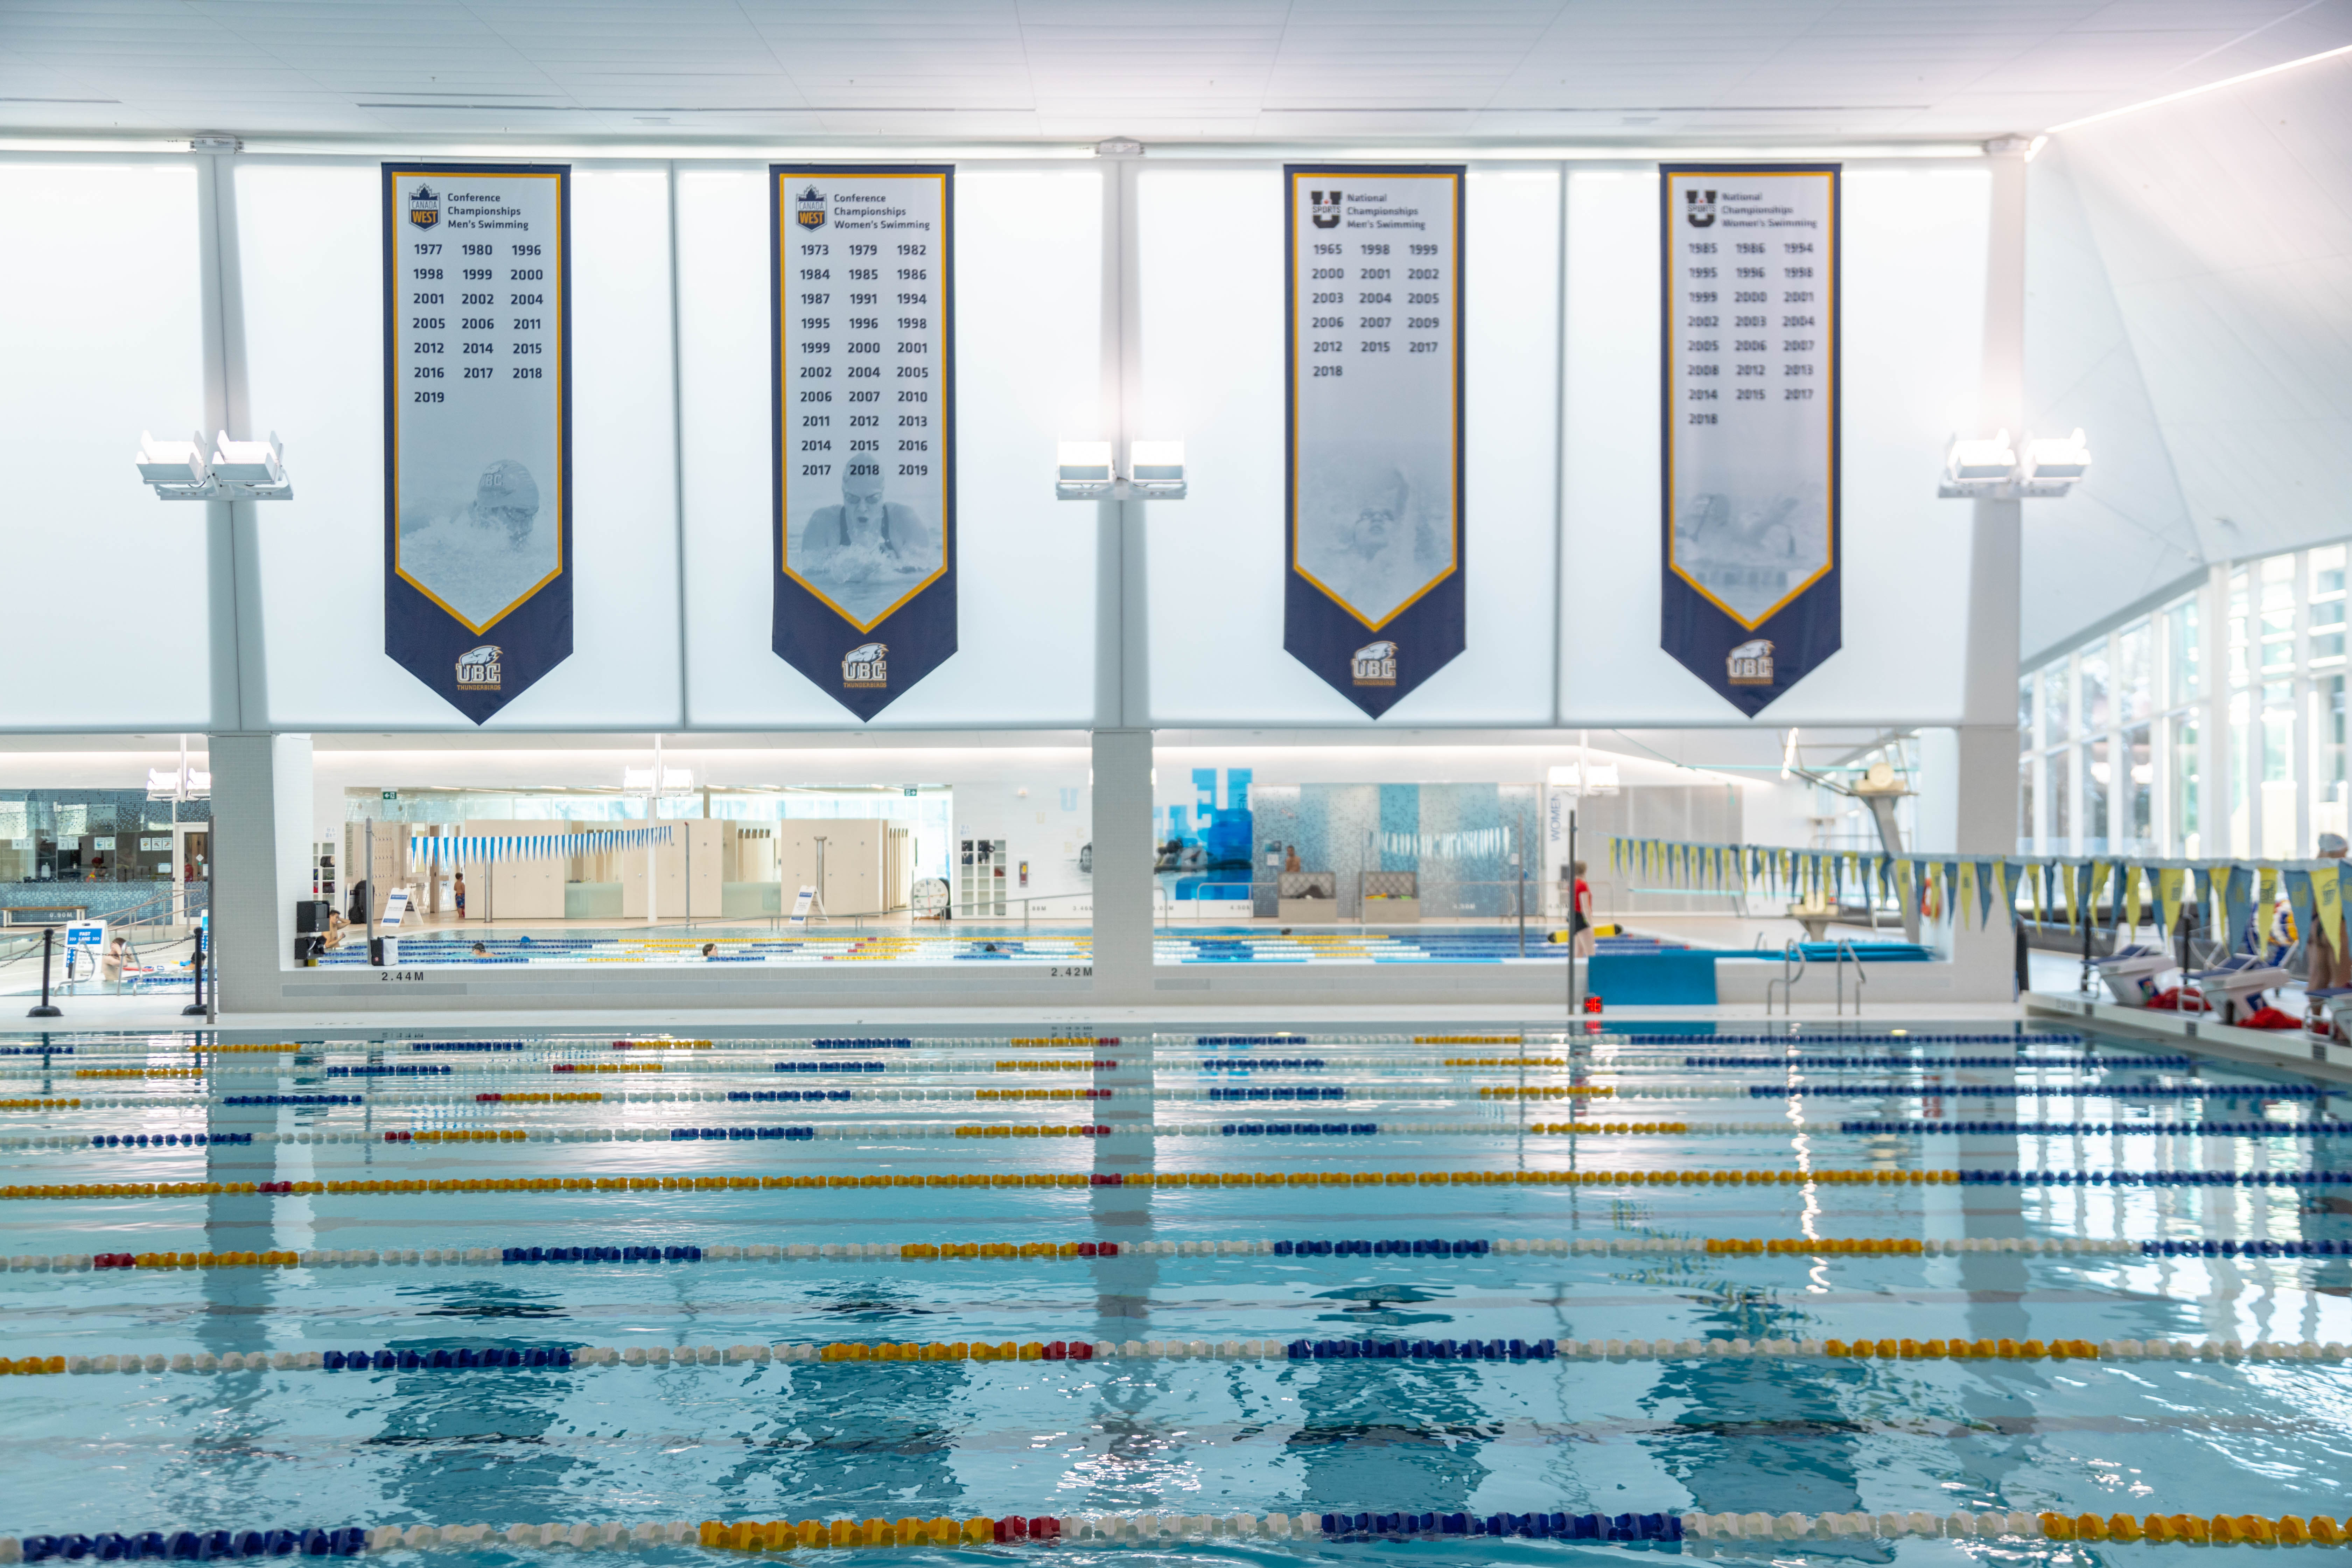 UBC has a winning history in Canadian university swimming.